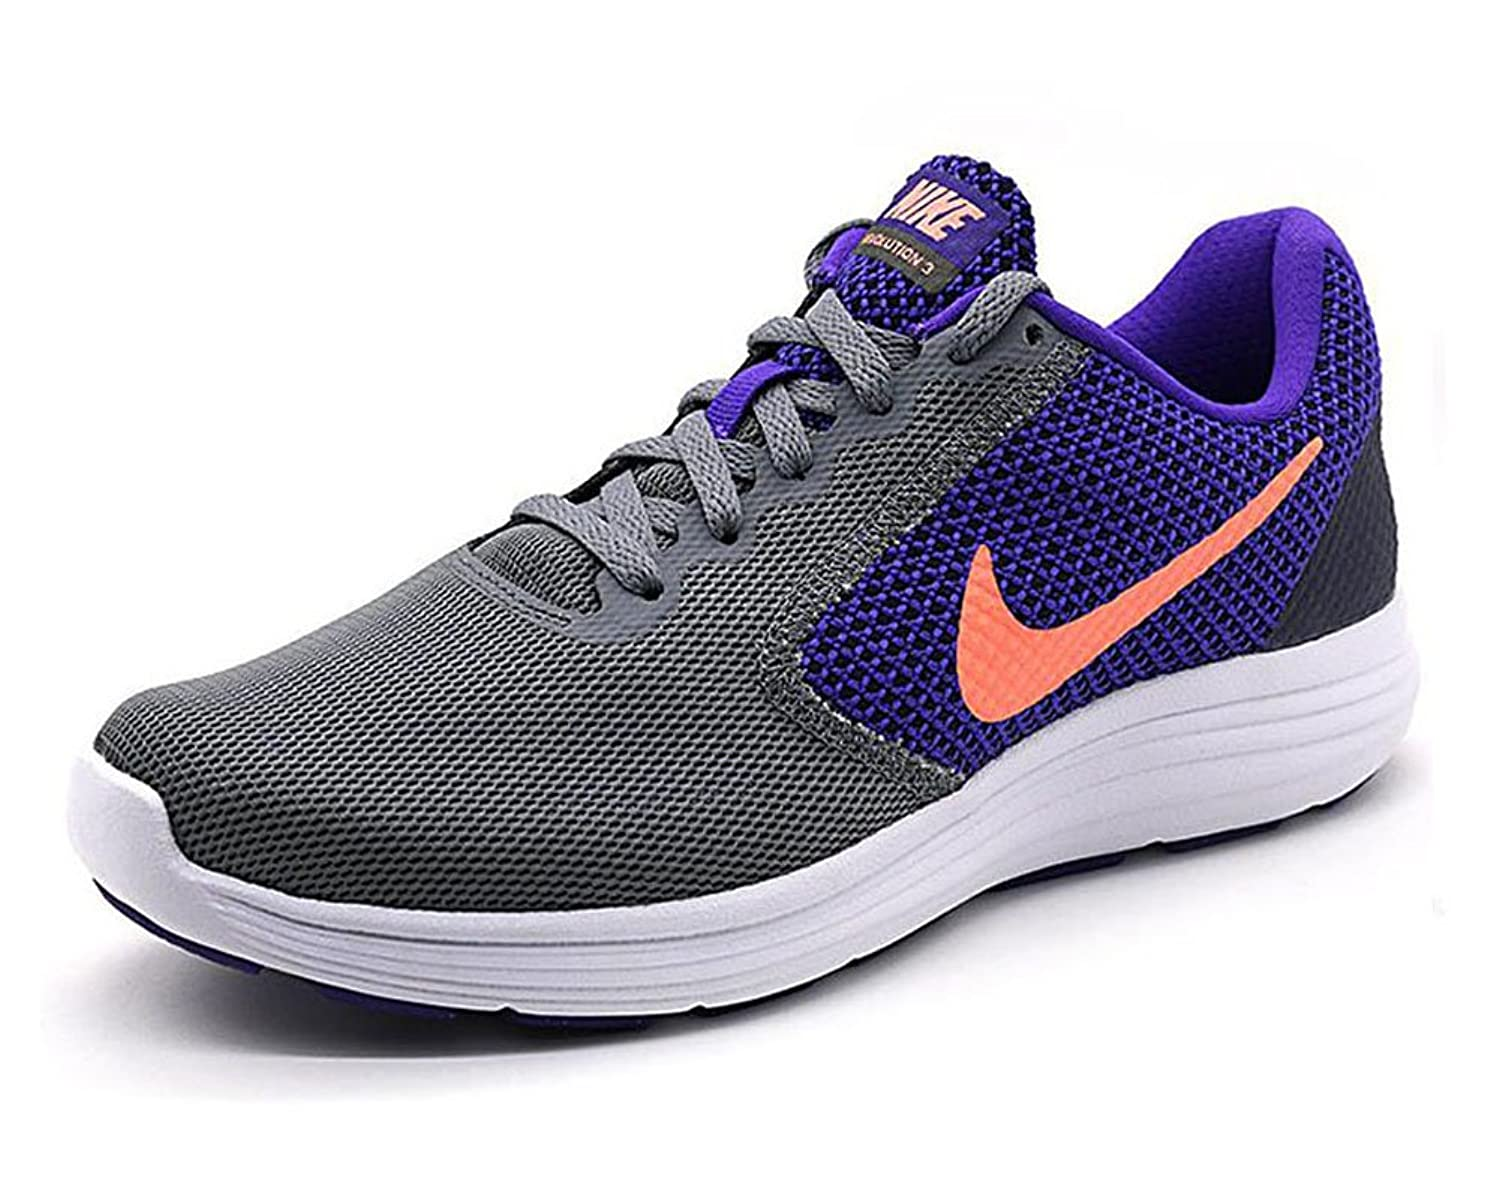 4ec58b5a034 delicate Nike Wmns Revolution 3 Running Shoes  819303-500 - lions ...